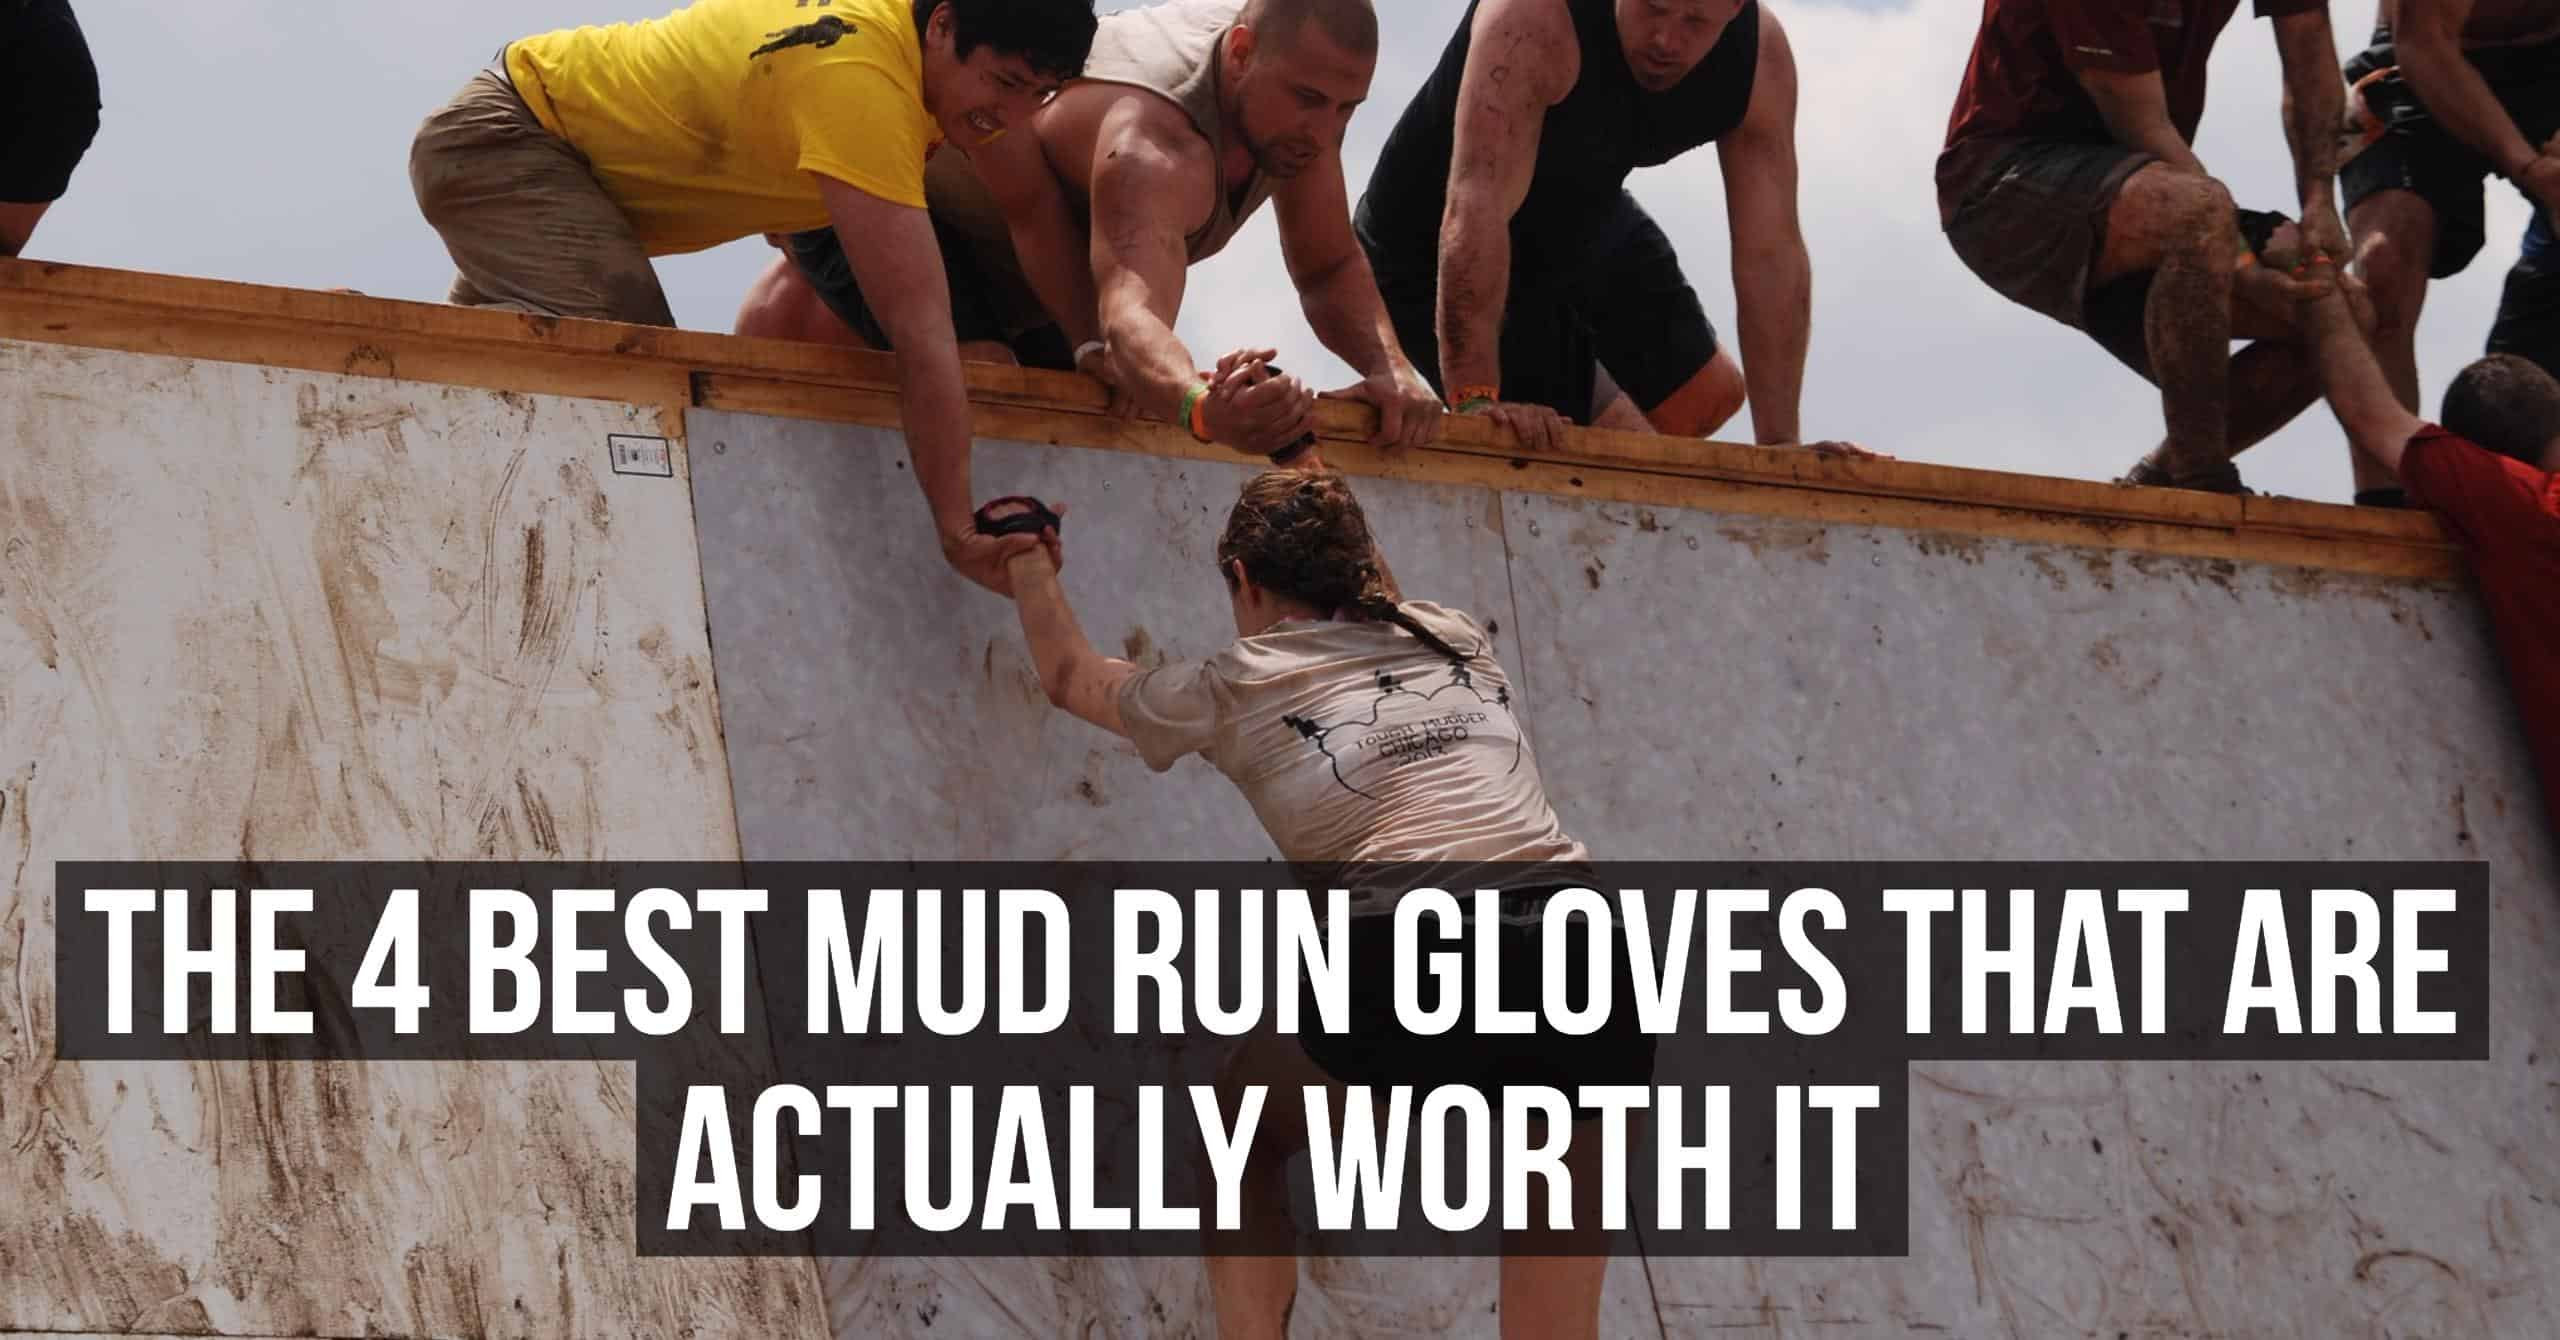 When running obstacle races such as Tough Mudders and others, it can be a tough business for the hands. Here the 4 best mud run gloves that are actually worth It. And keep you protected.